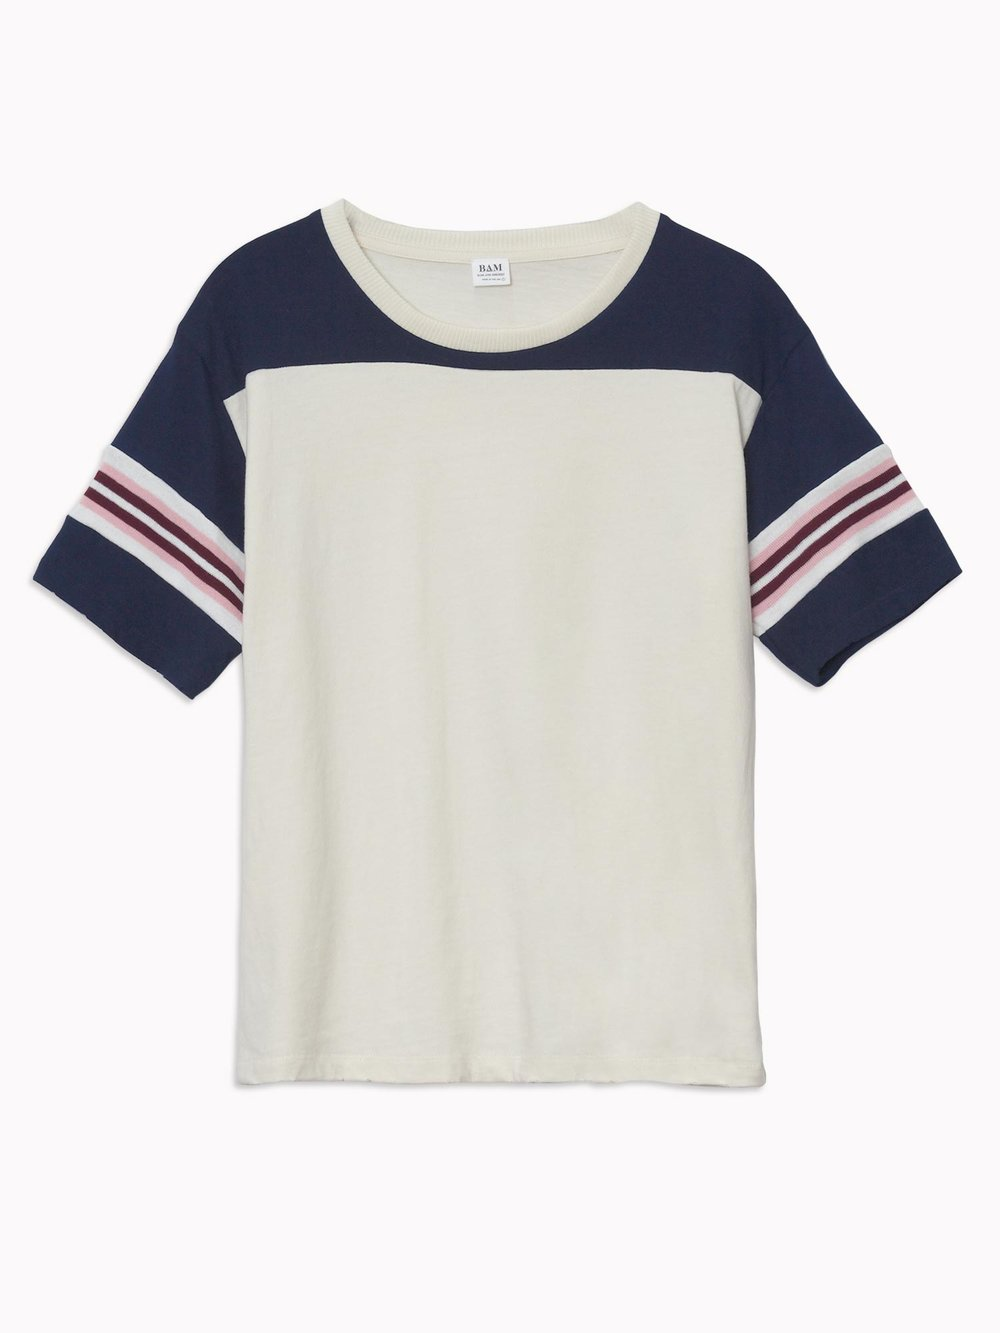 Jane Tee in Navy.jpg